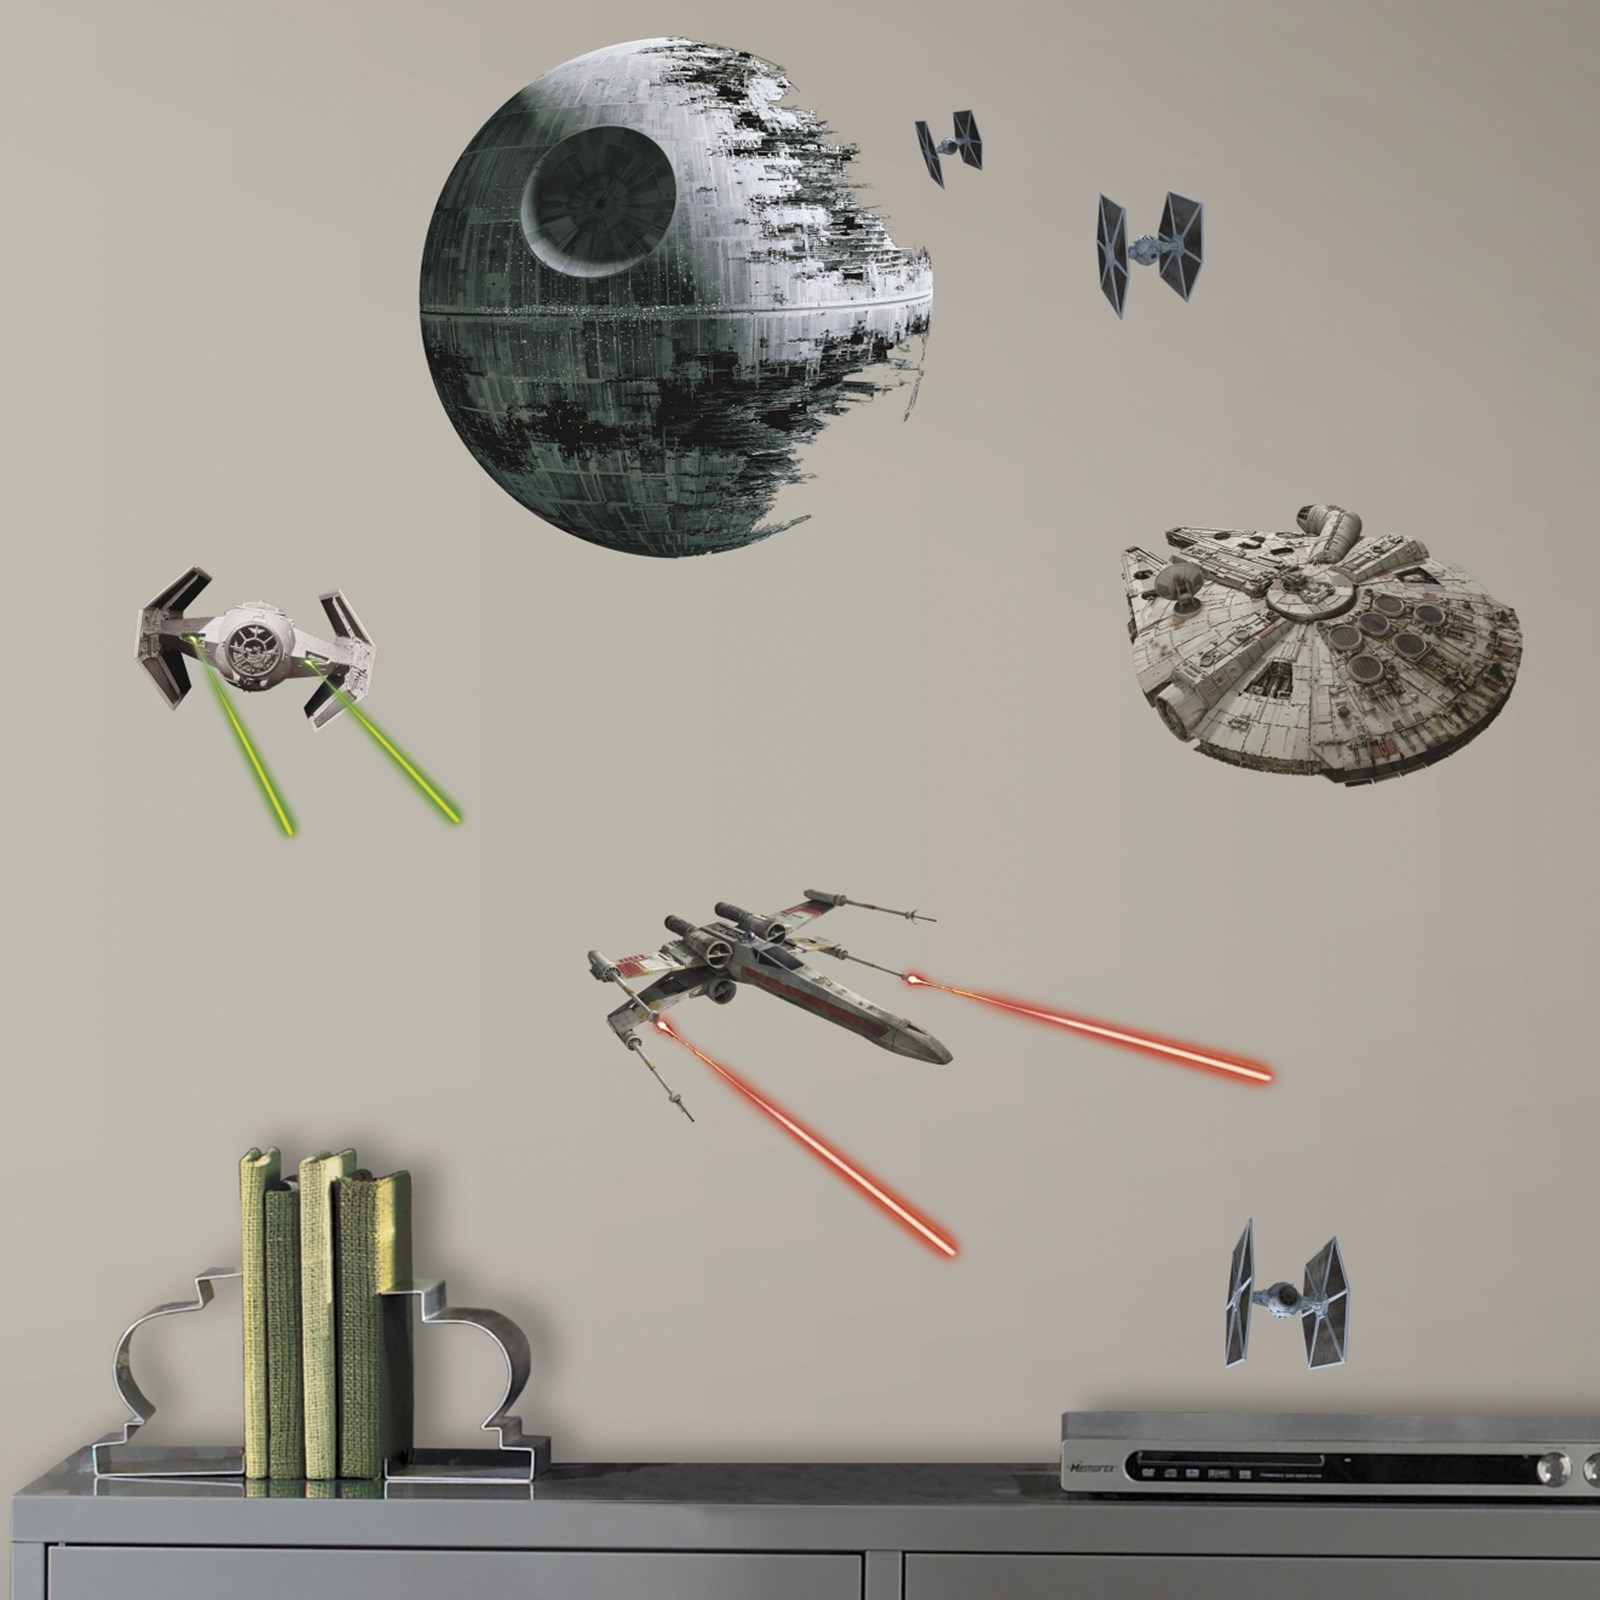 star wars 7 the force awakens spaceships small wall decals